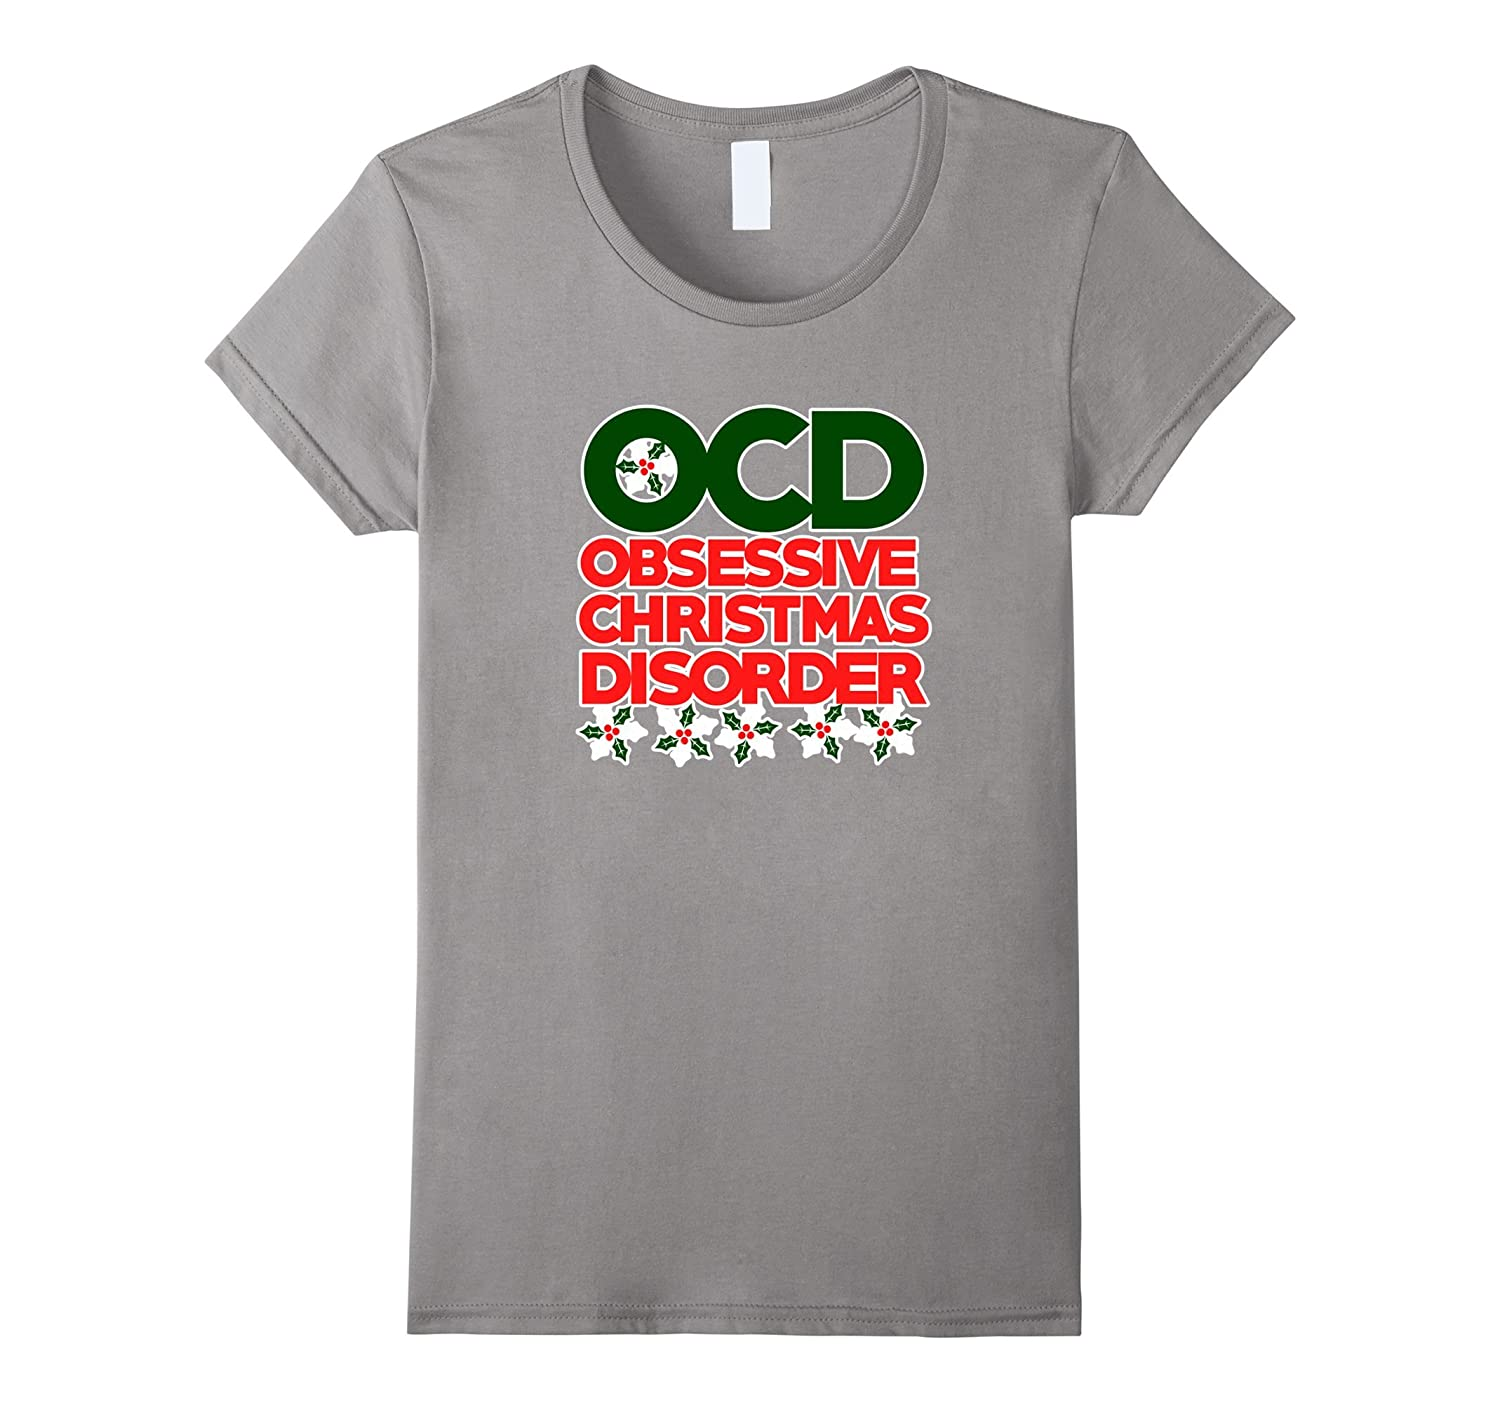 Amazon.com: OCD Obsessive Christmas Disorder shirt for xmas obsessed ...